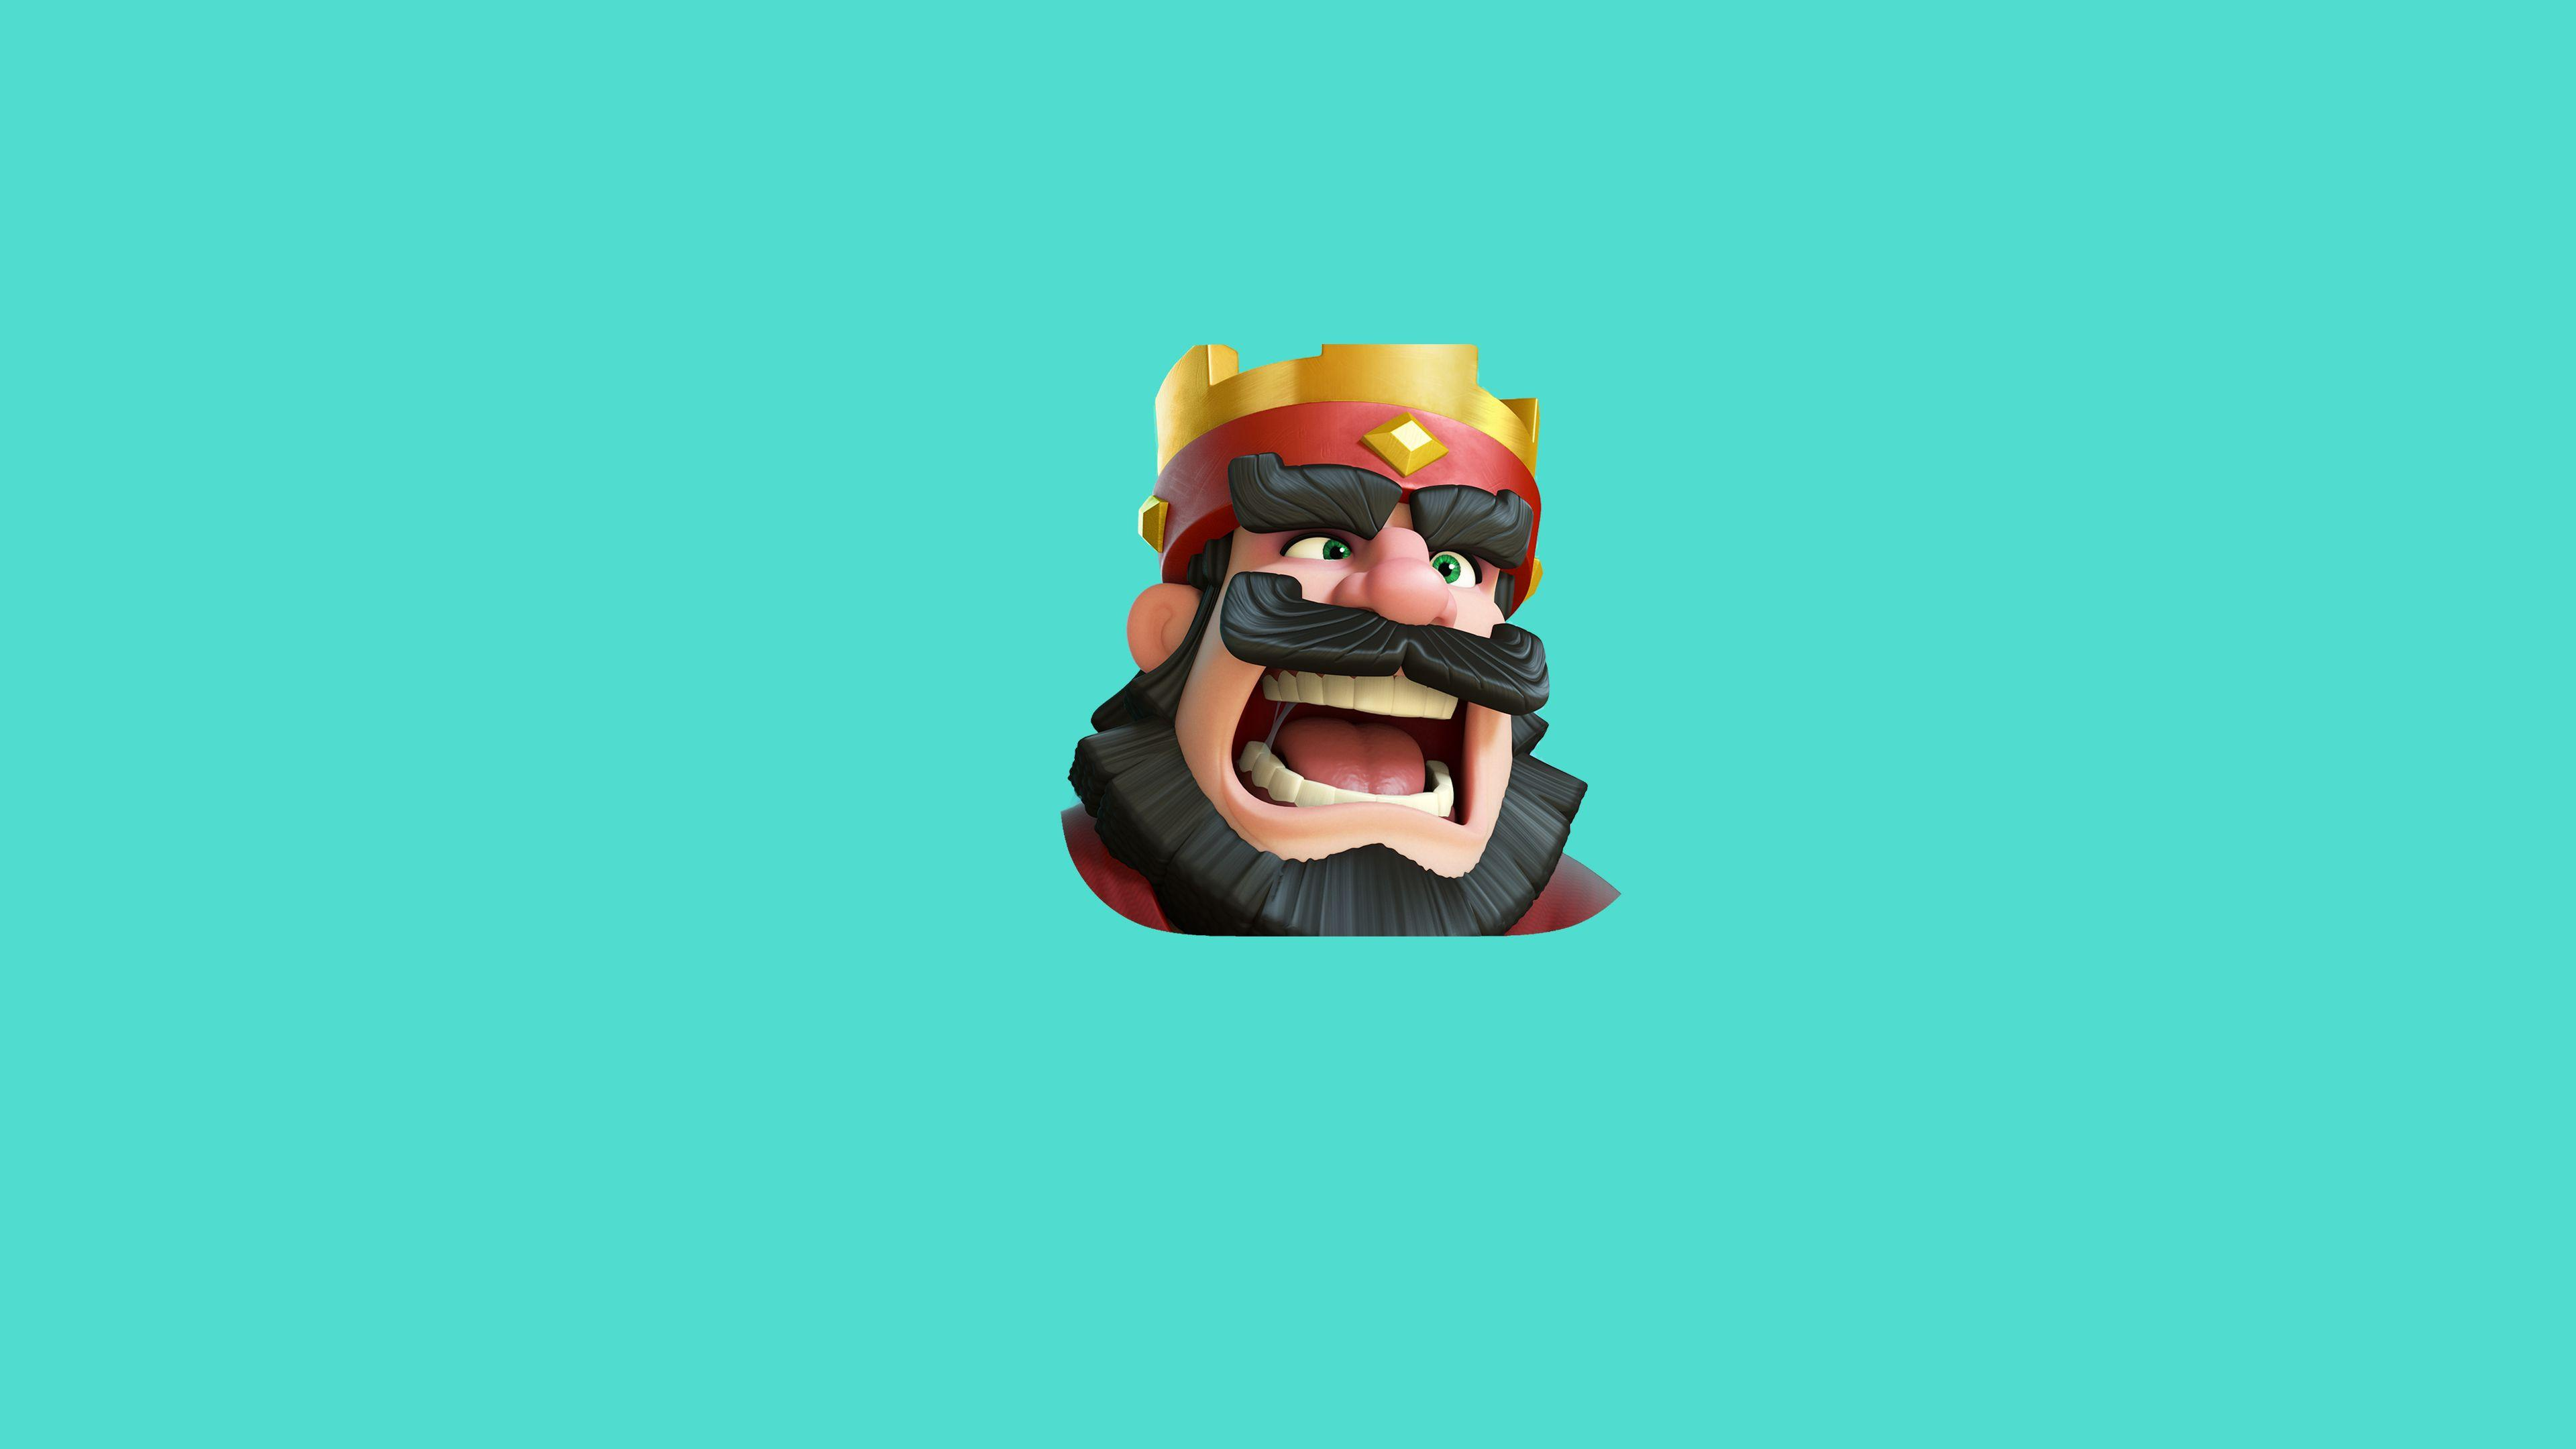 Clash Royale King Wallpaper | Games HD Wallpapers